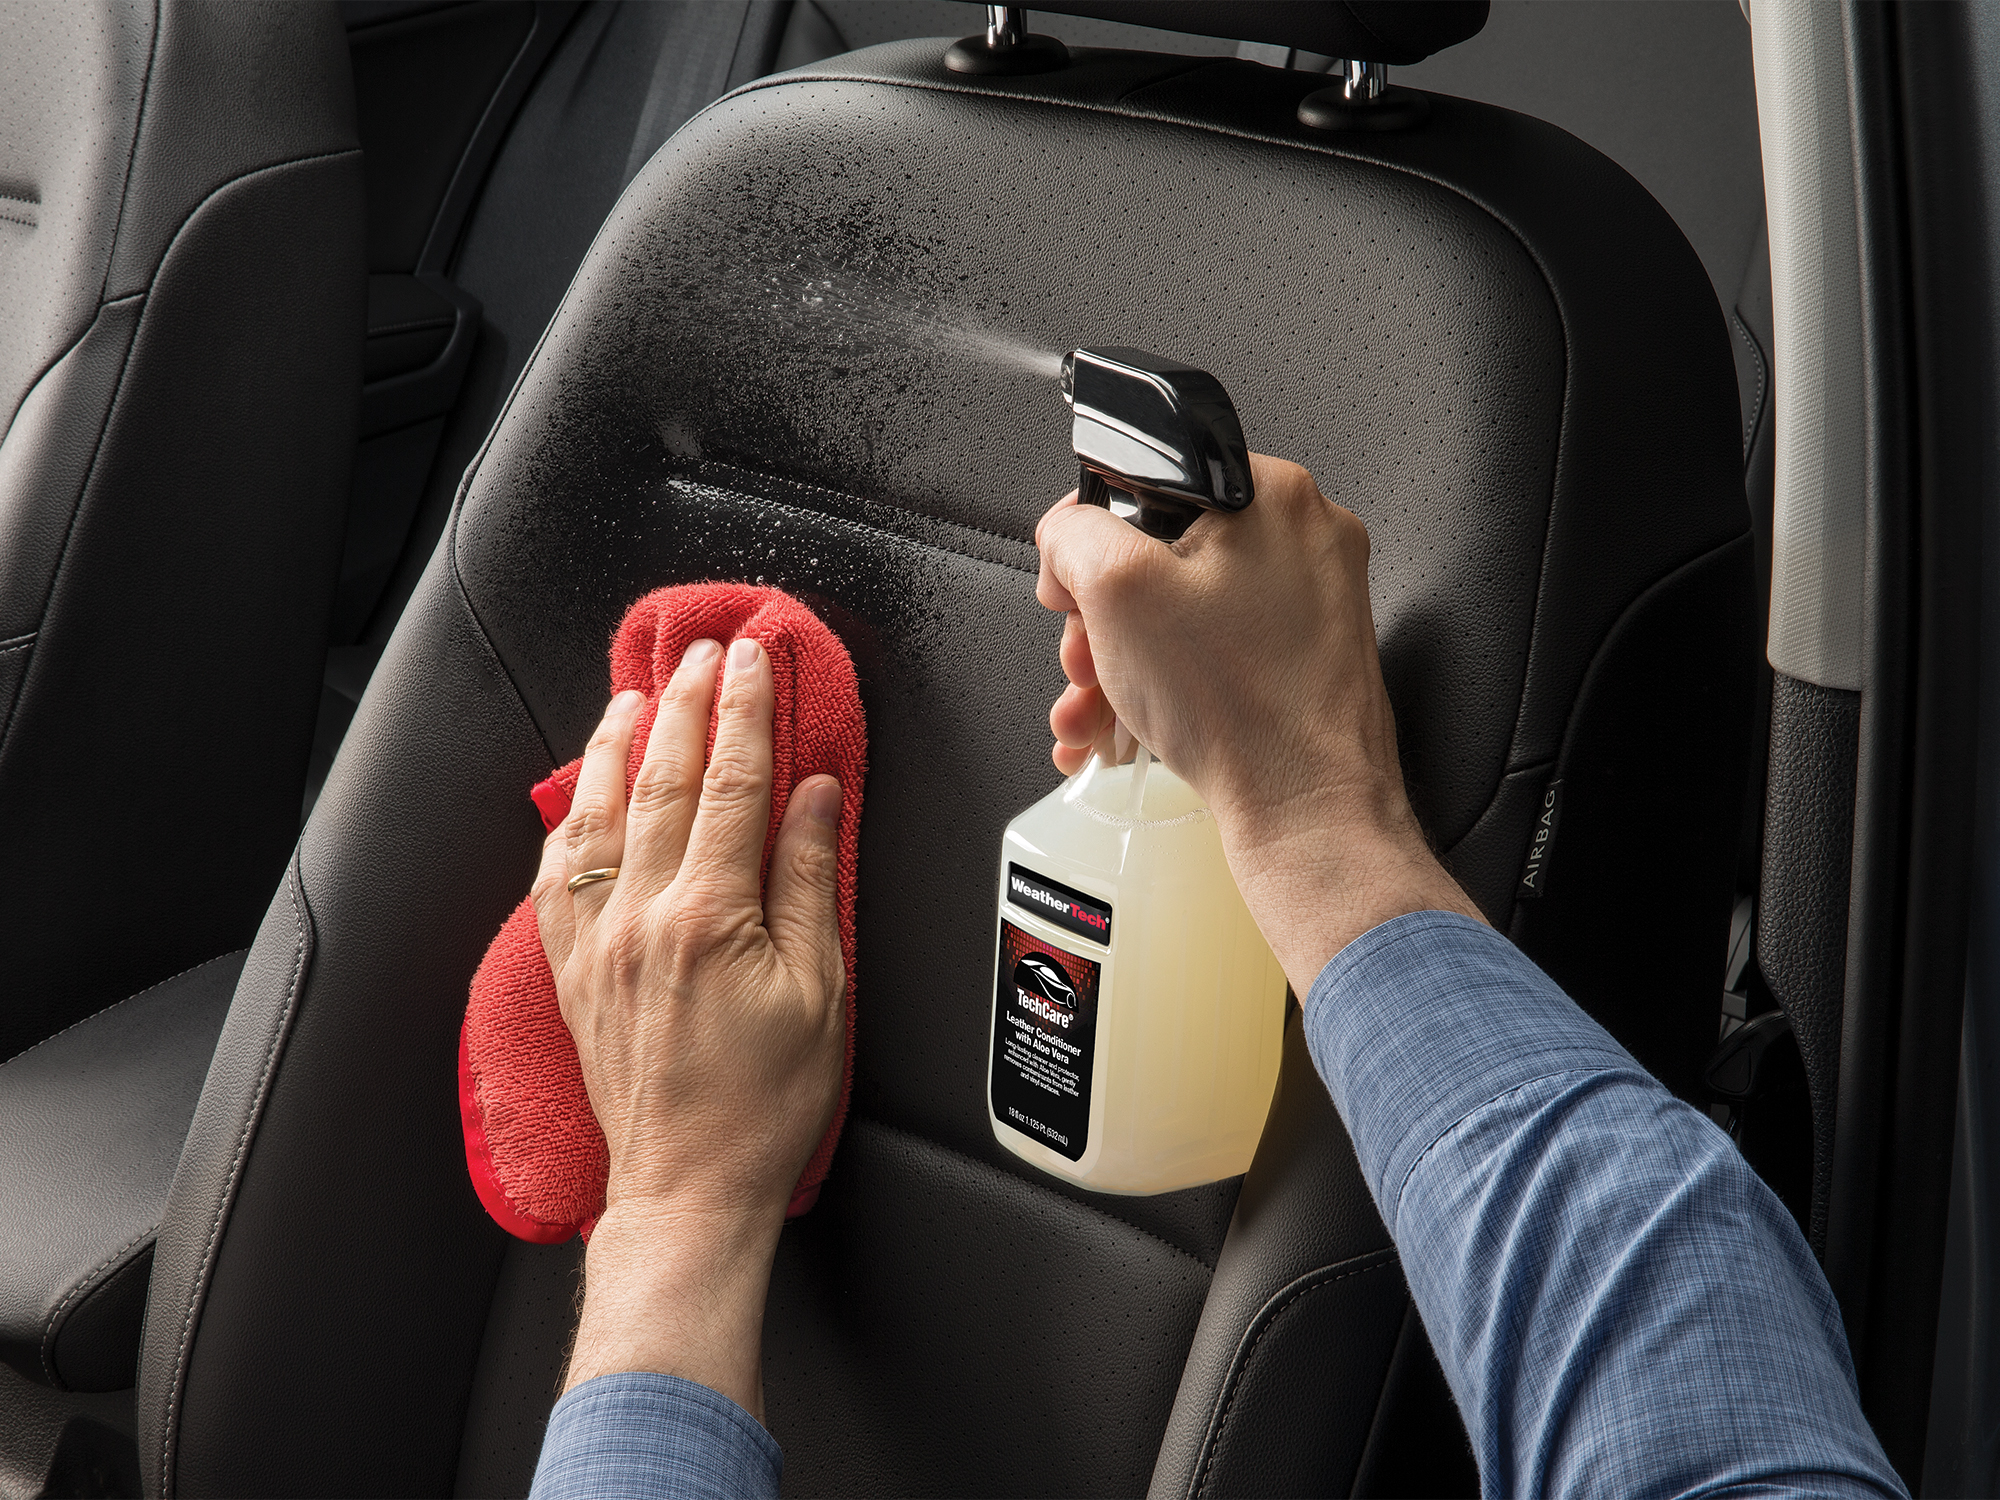 TechCare Leather Conditioner deep cleans automotive leather surfaces and provides protection against UV radiation.